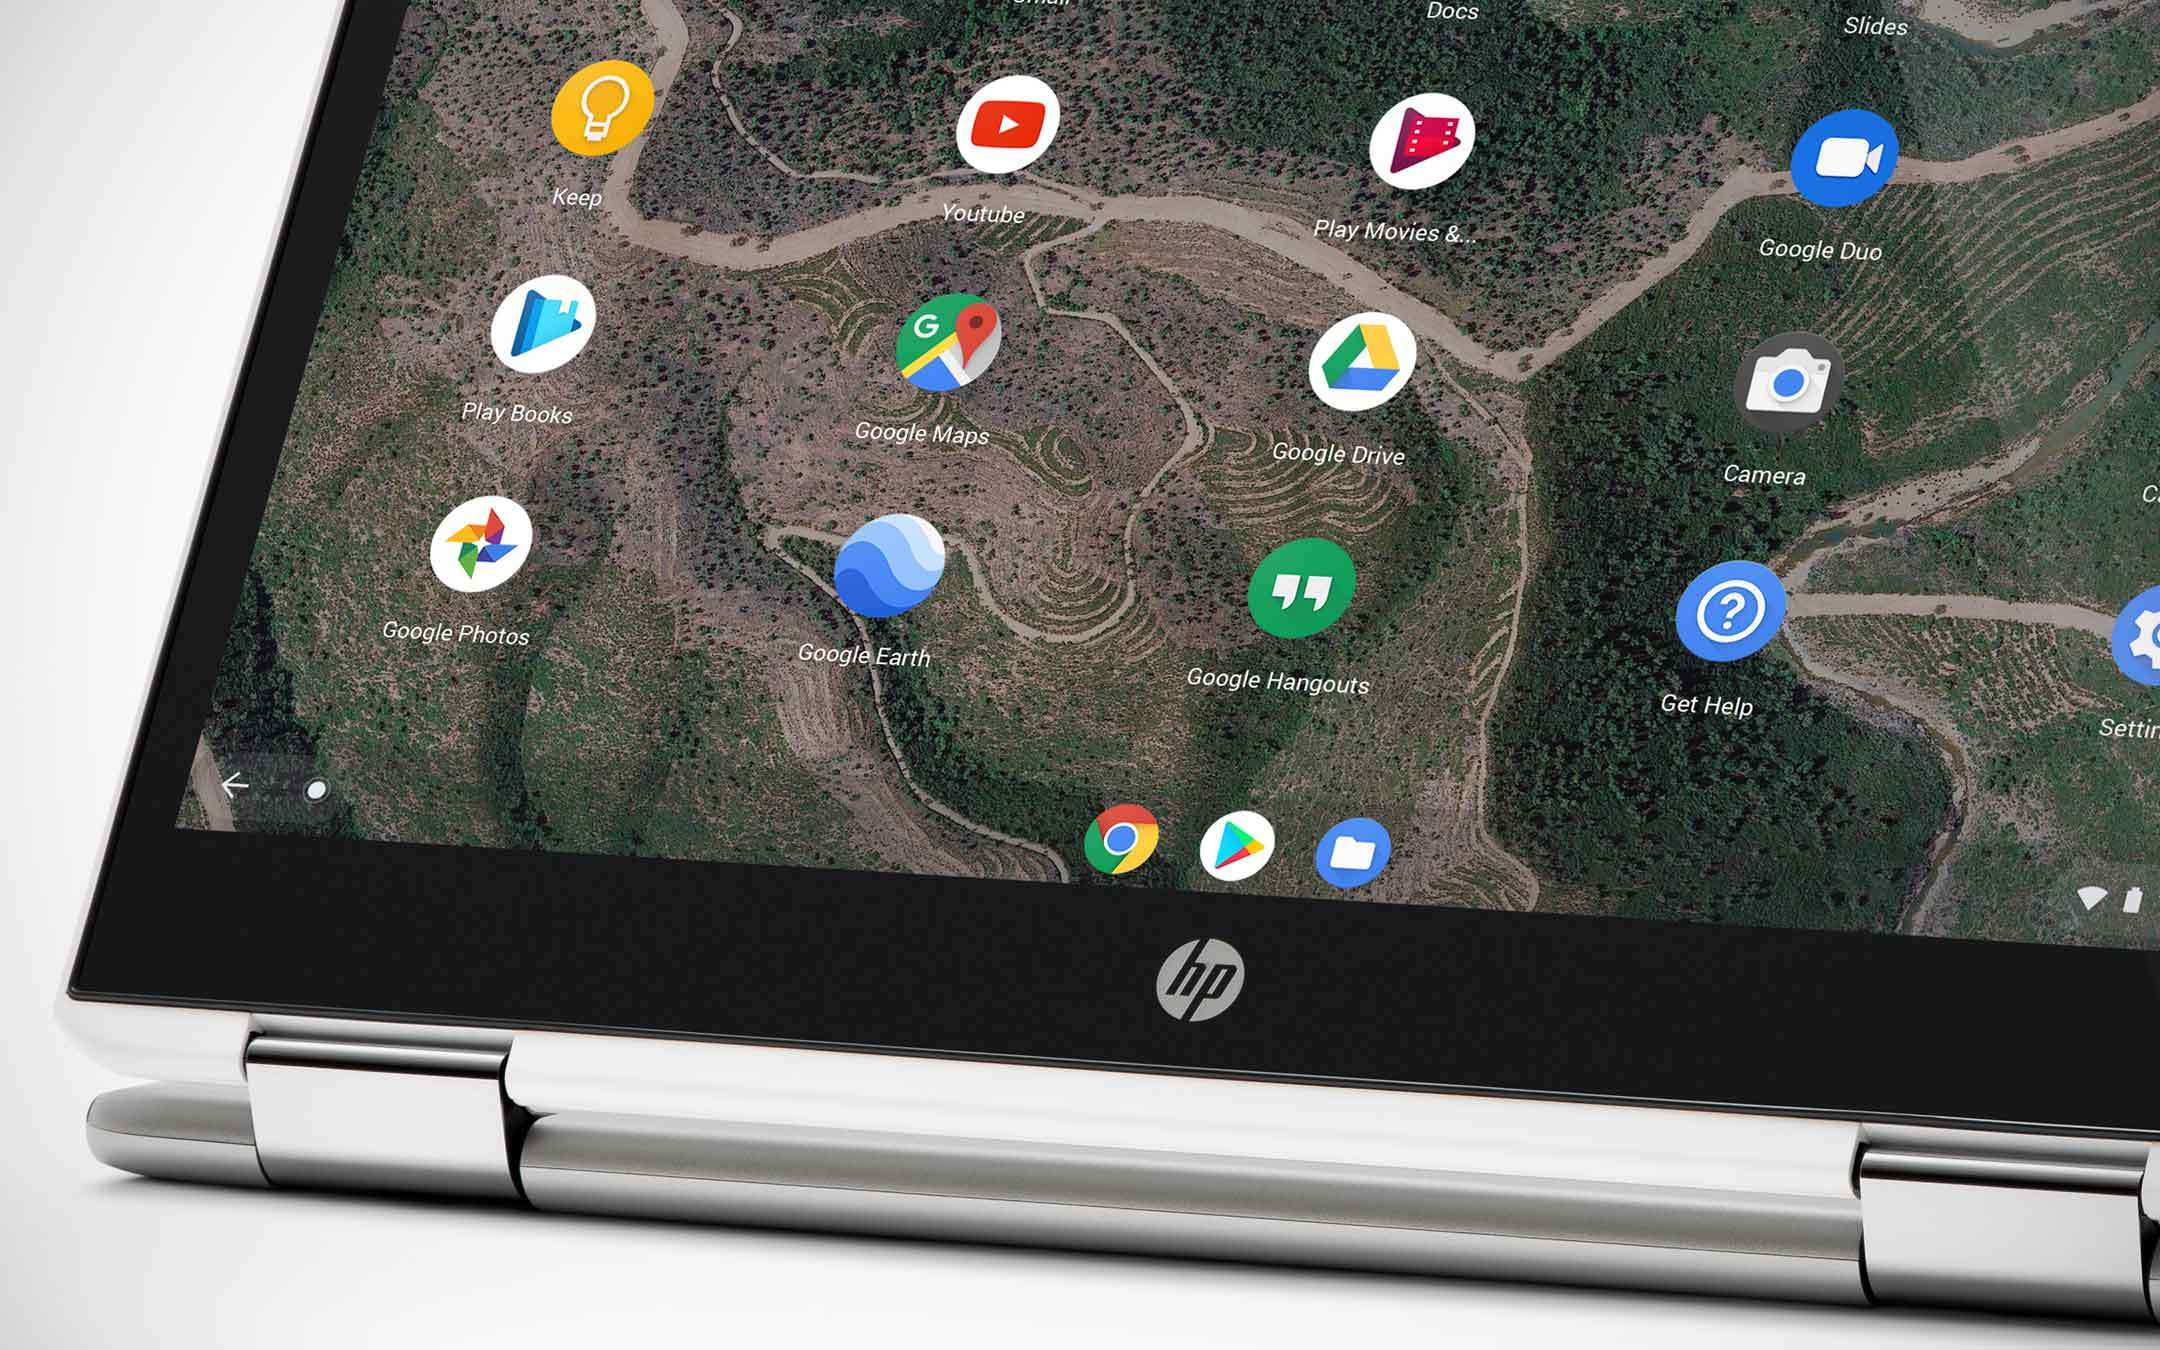 PC market: record of deliveries for Chromebooks